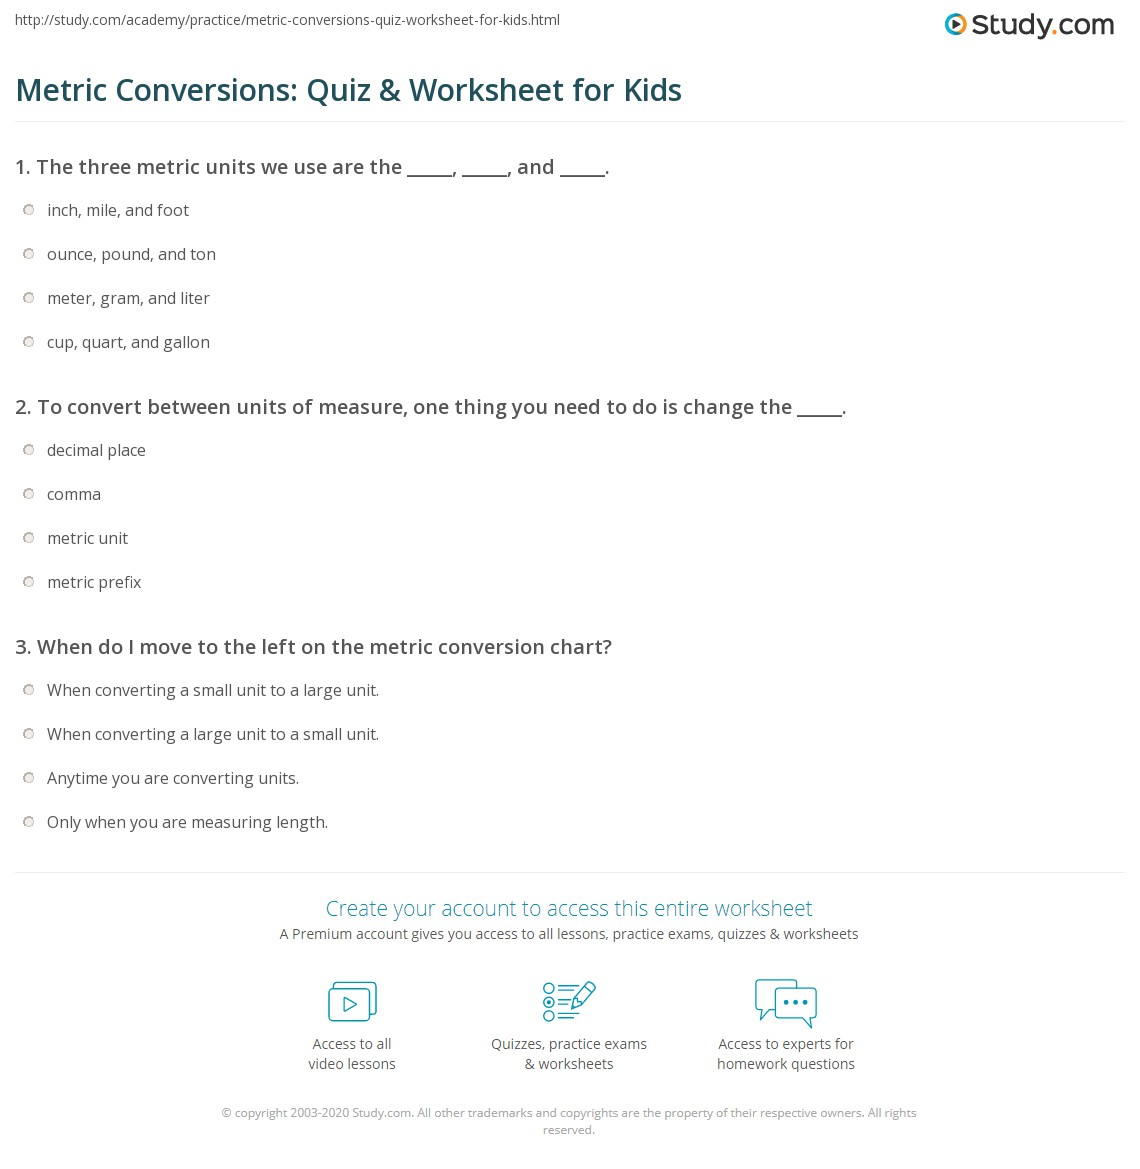 metric conversions: quiz & worksheet for kids | study